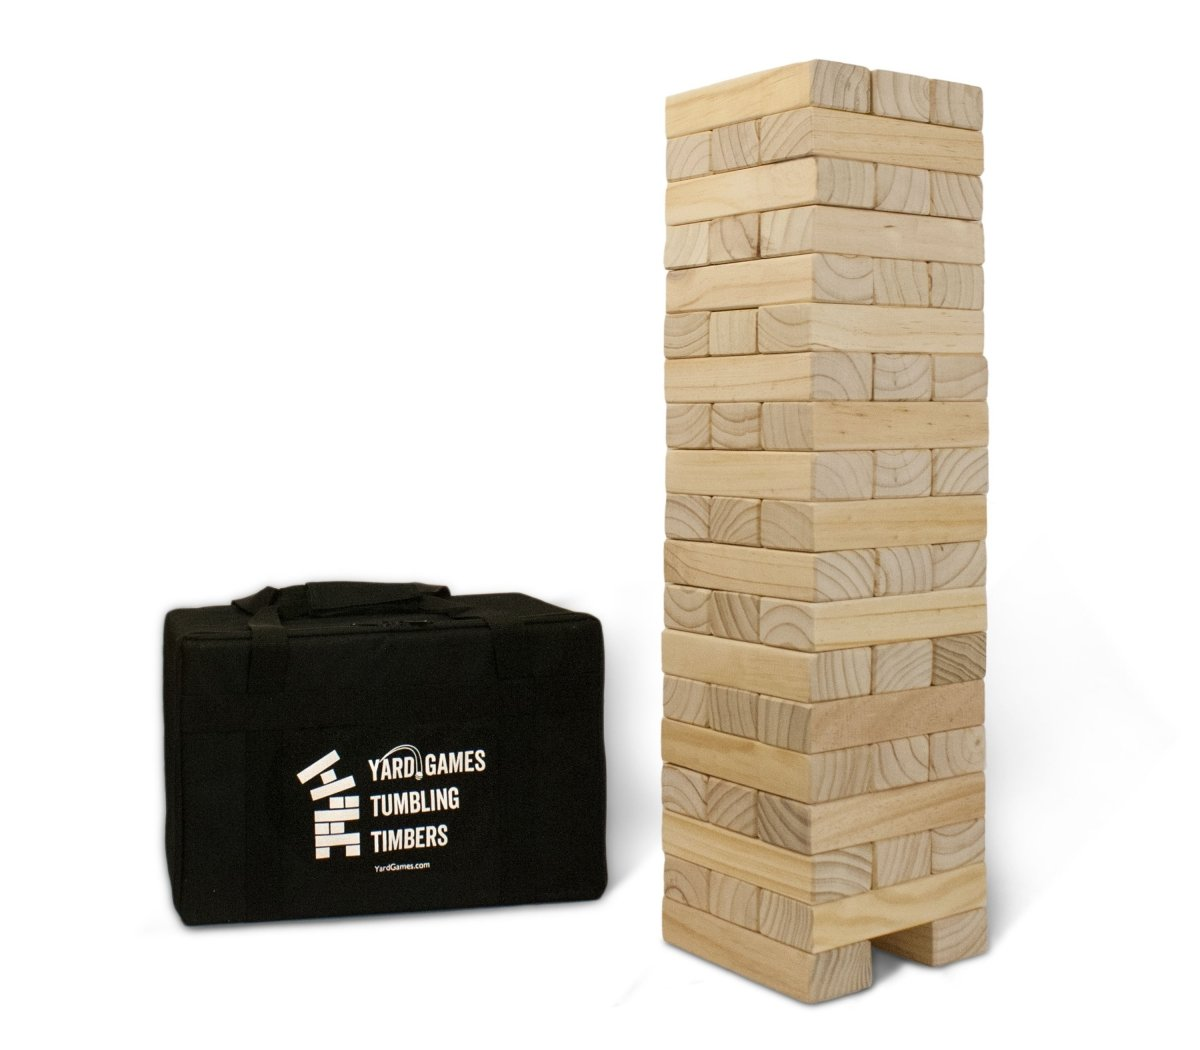 19G105 Giant Tumbling Block Game